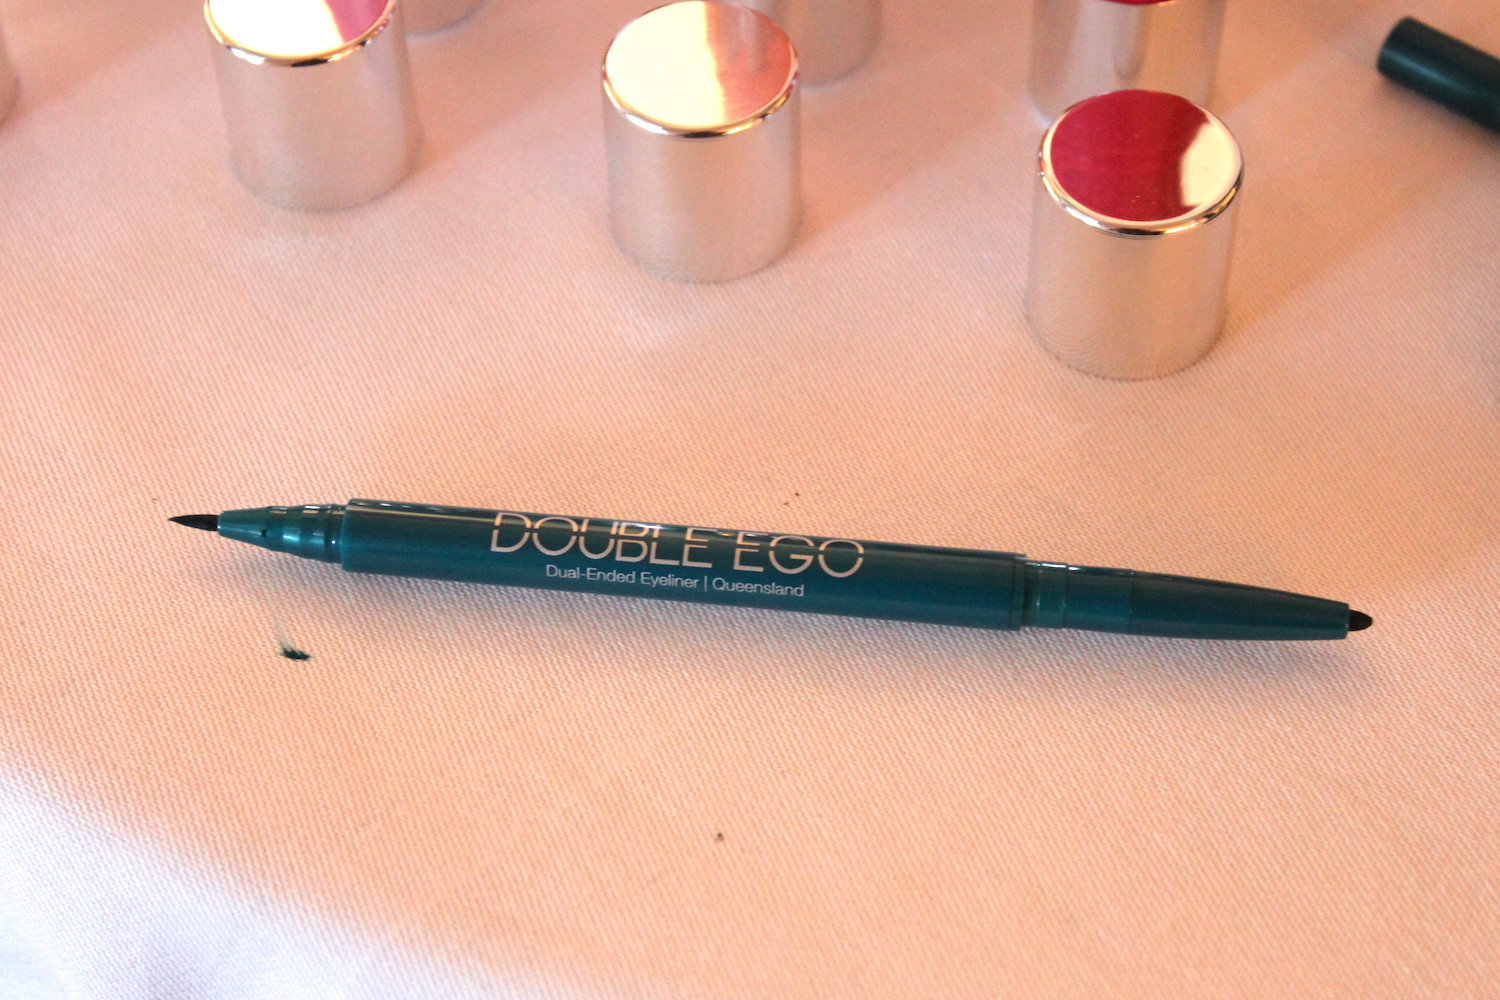 Pur Minerals Double Ego